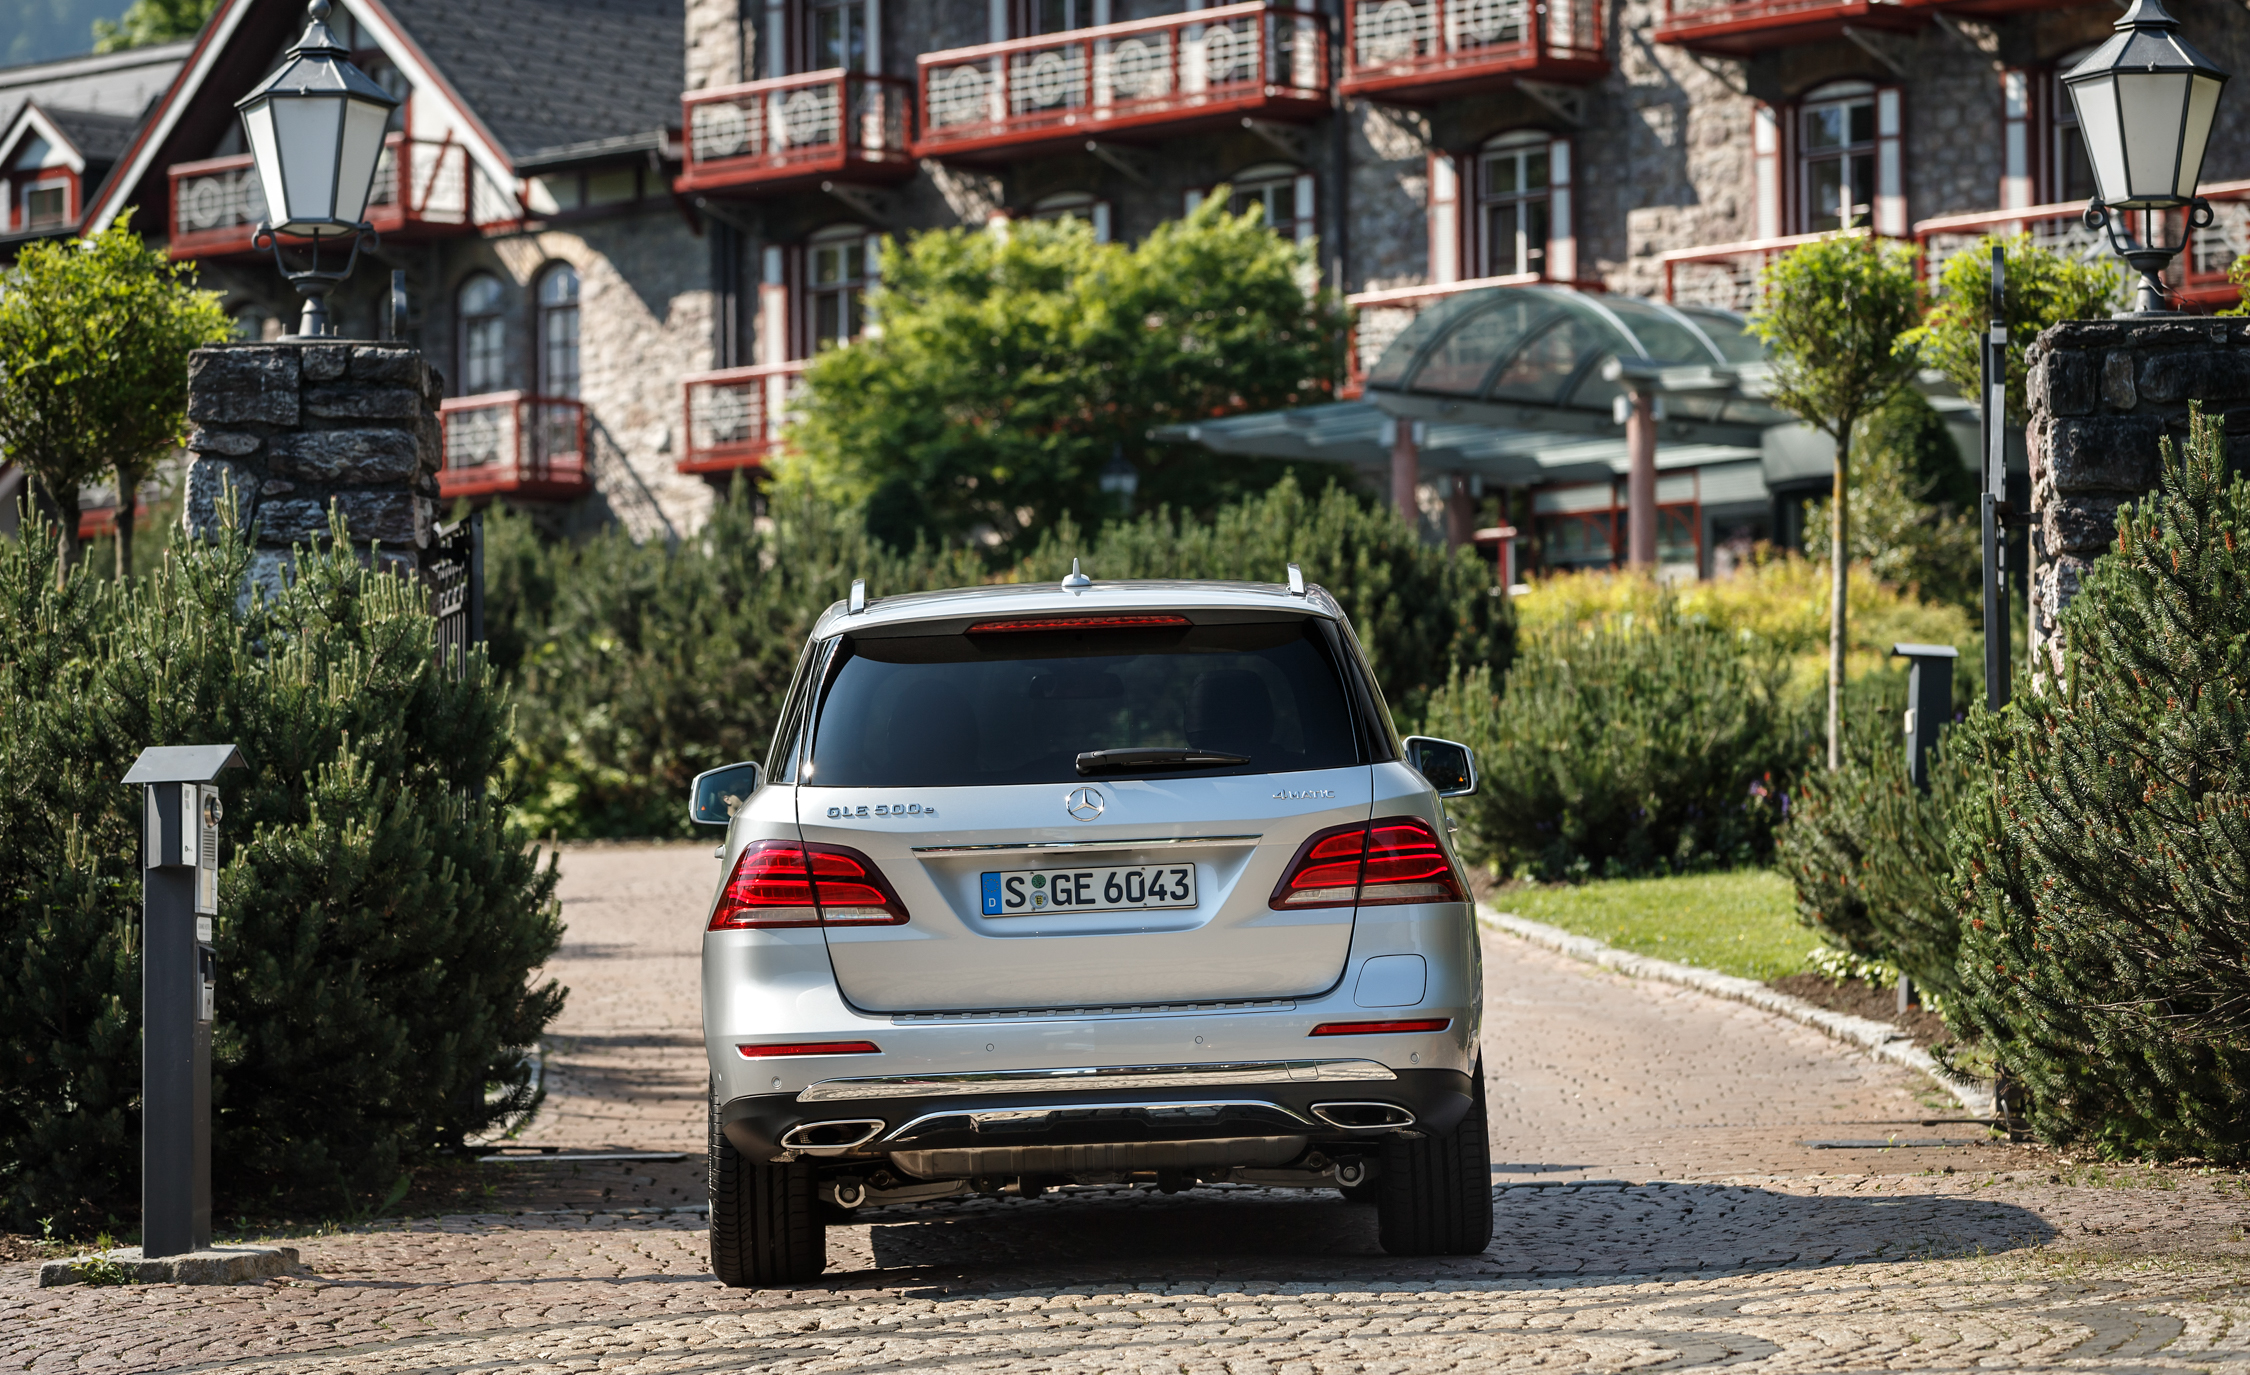 2016 Mercedes Benz GLE500e 4MATIC (View 40 of 43)